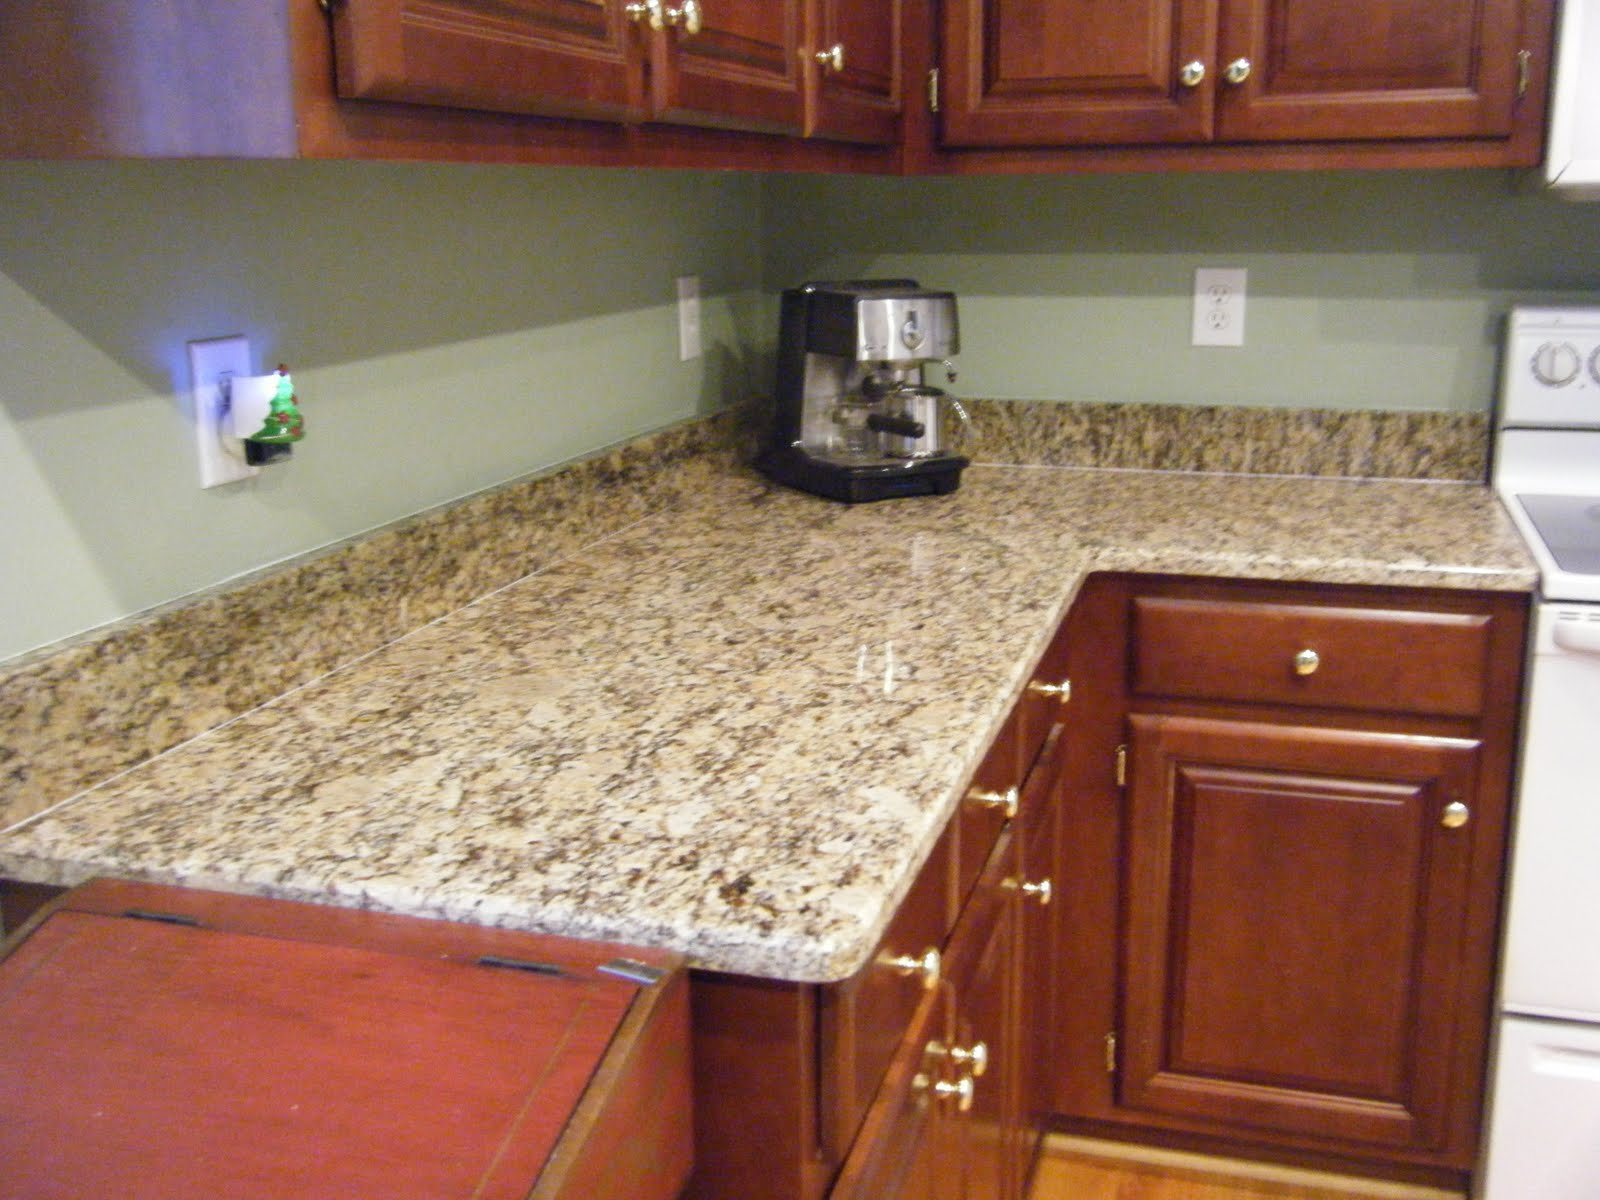 Kitchen Countertop Prices: Transform Your Kitchen Or Bath With Granite Countertops